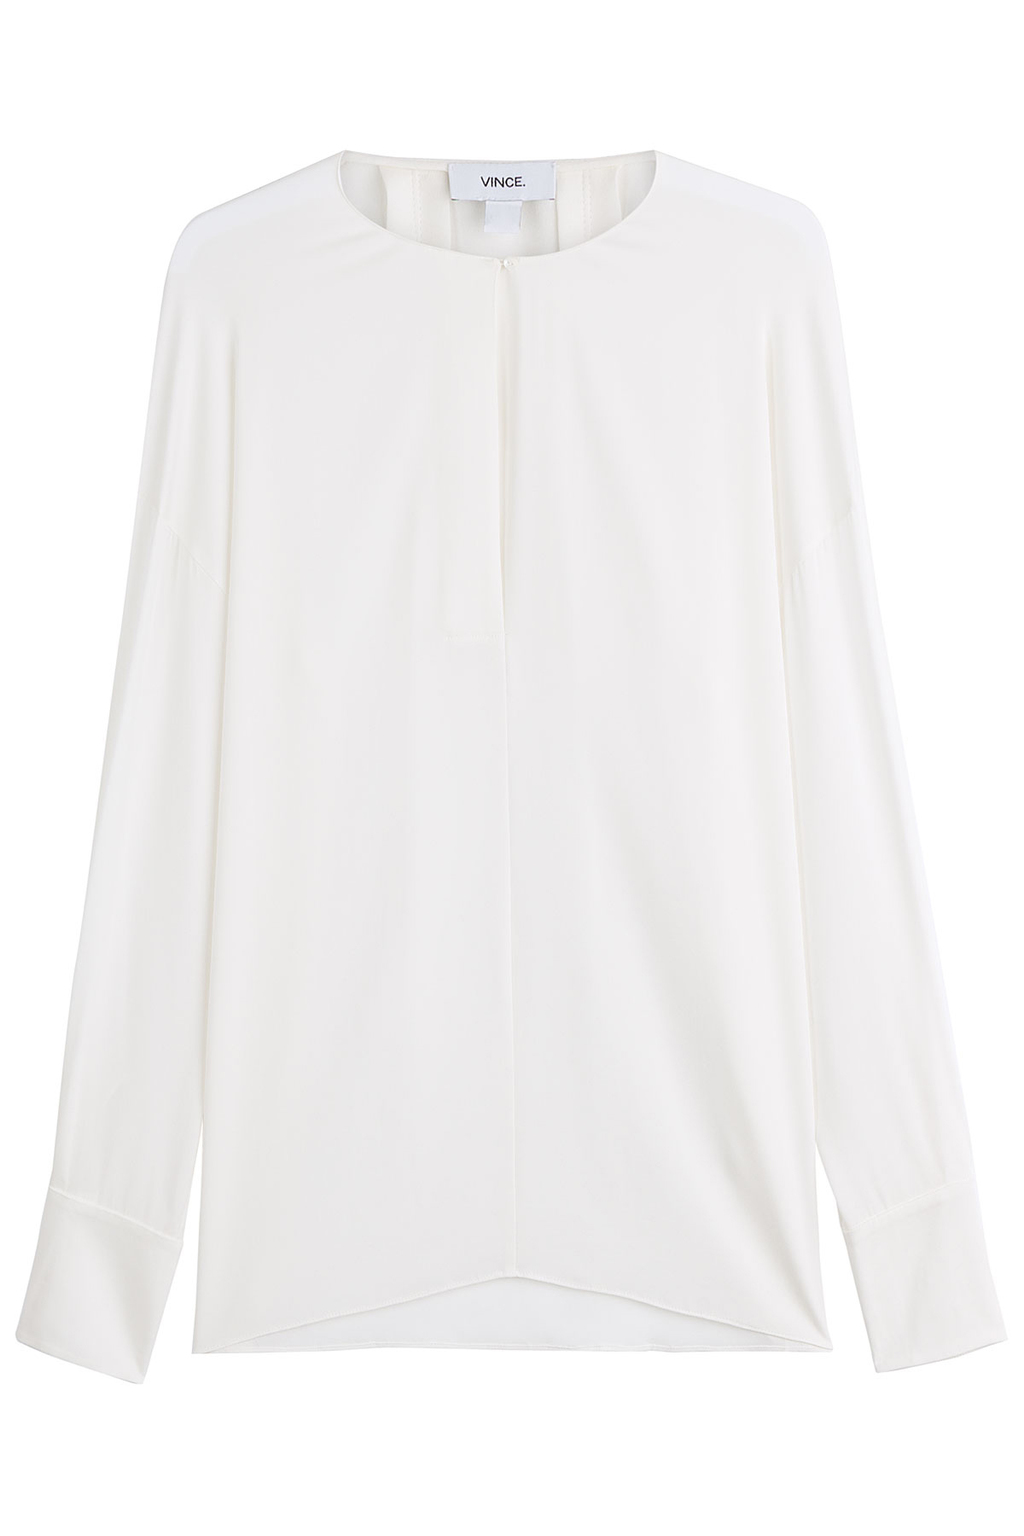 Silk Blouse - pattern: plain; style: blouse; predominant colour: white; occasions: evening; length: standard; fibres: silk - 100%; fit: body skimming; neckline: crew; sleeve length: long sleeve; sleeve style: standard; texture group: silky - light; pattern type: fabric; season: s/s 2016; wardrobe: event